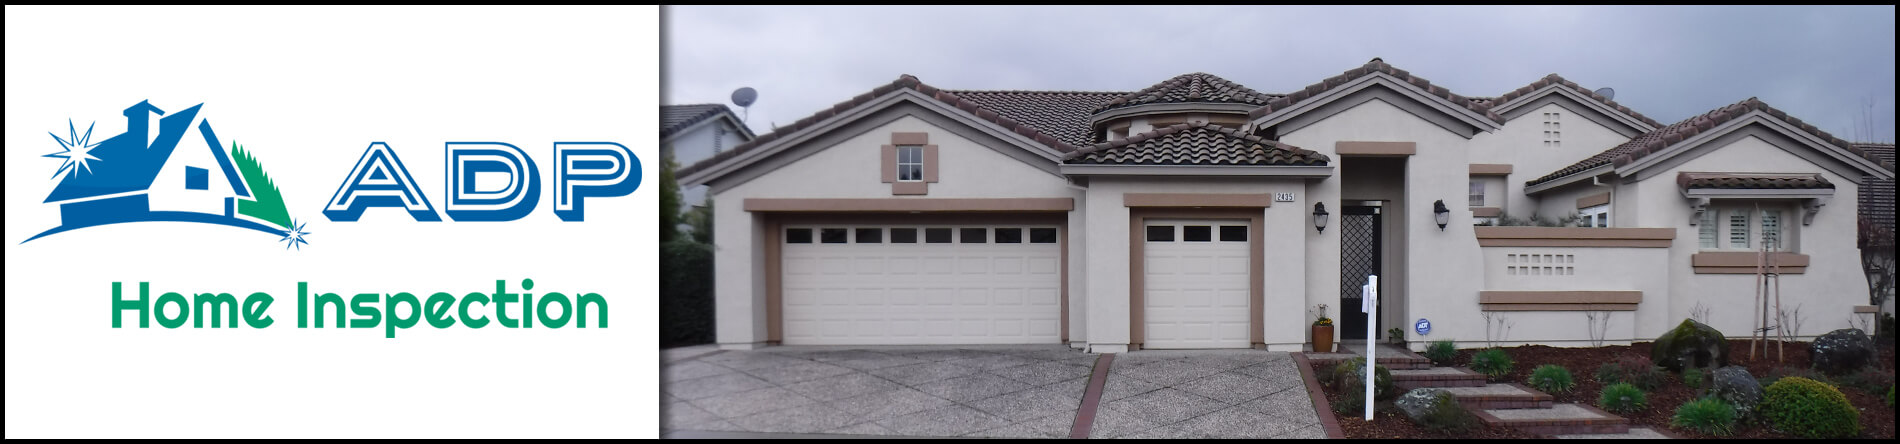 ADP Home Inspection is an Inspection Company in Lincoln, CA